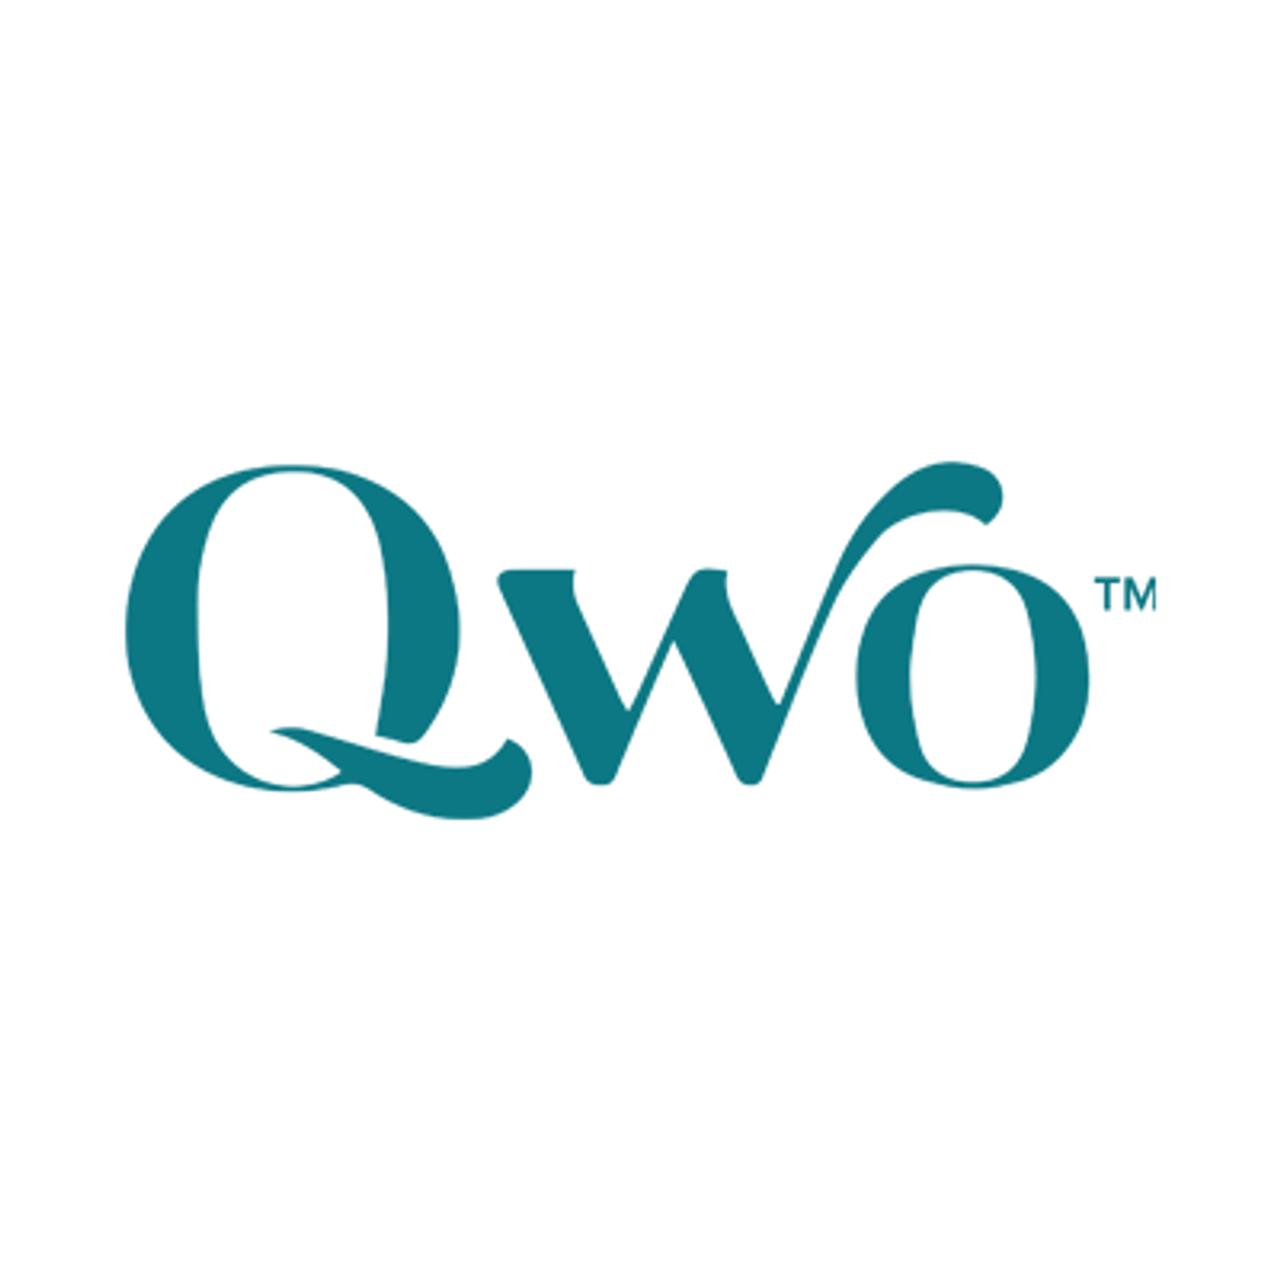 Qwo Bank Packages